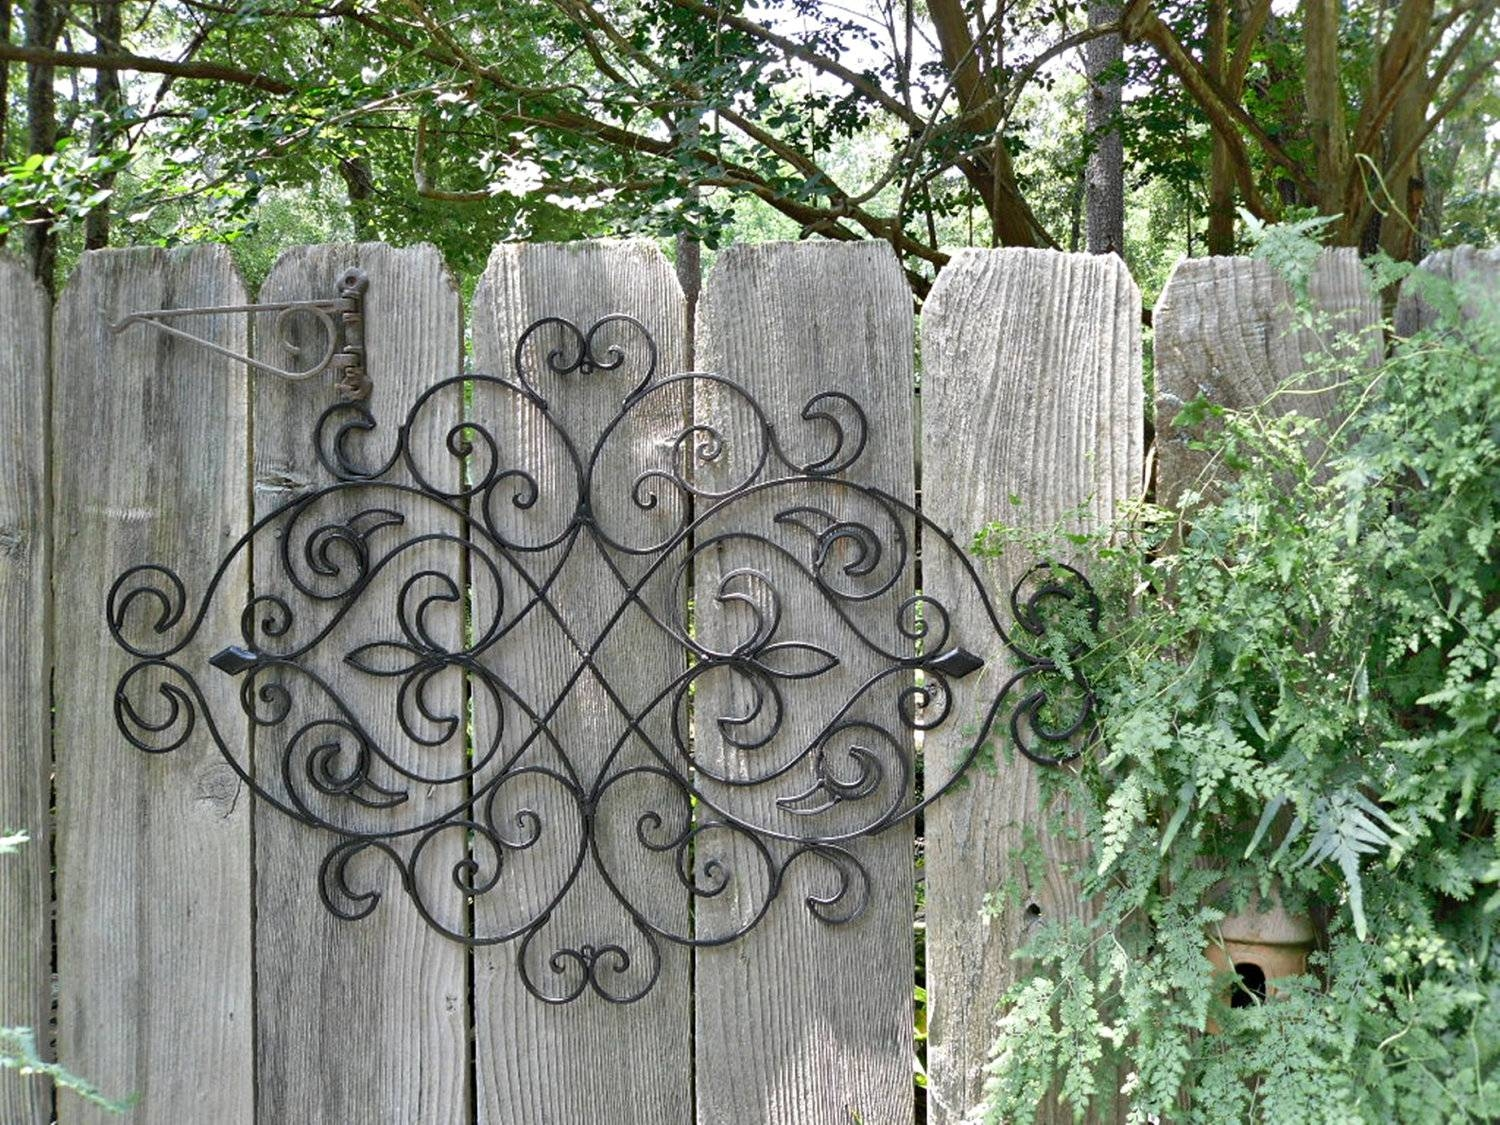 Tuscan Wrought Iron Beds Art – The Strong Wrought Iron Beds Throughout 2018 Tuscan Wrought Iron Wall Art (View 7 of 20)